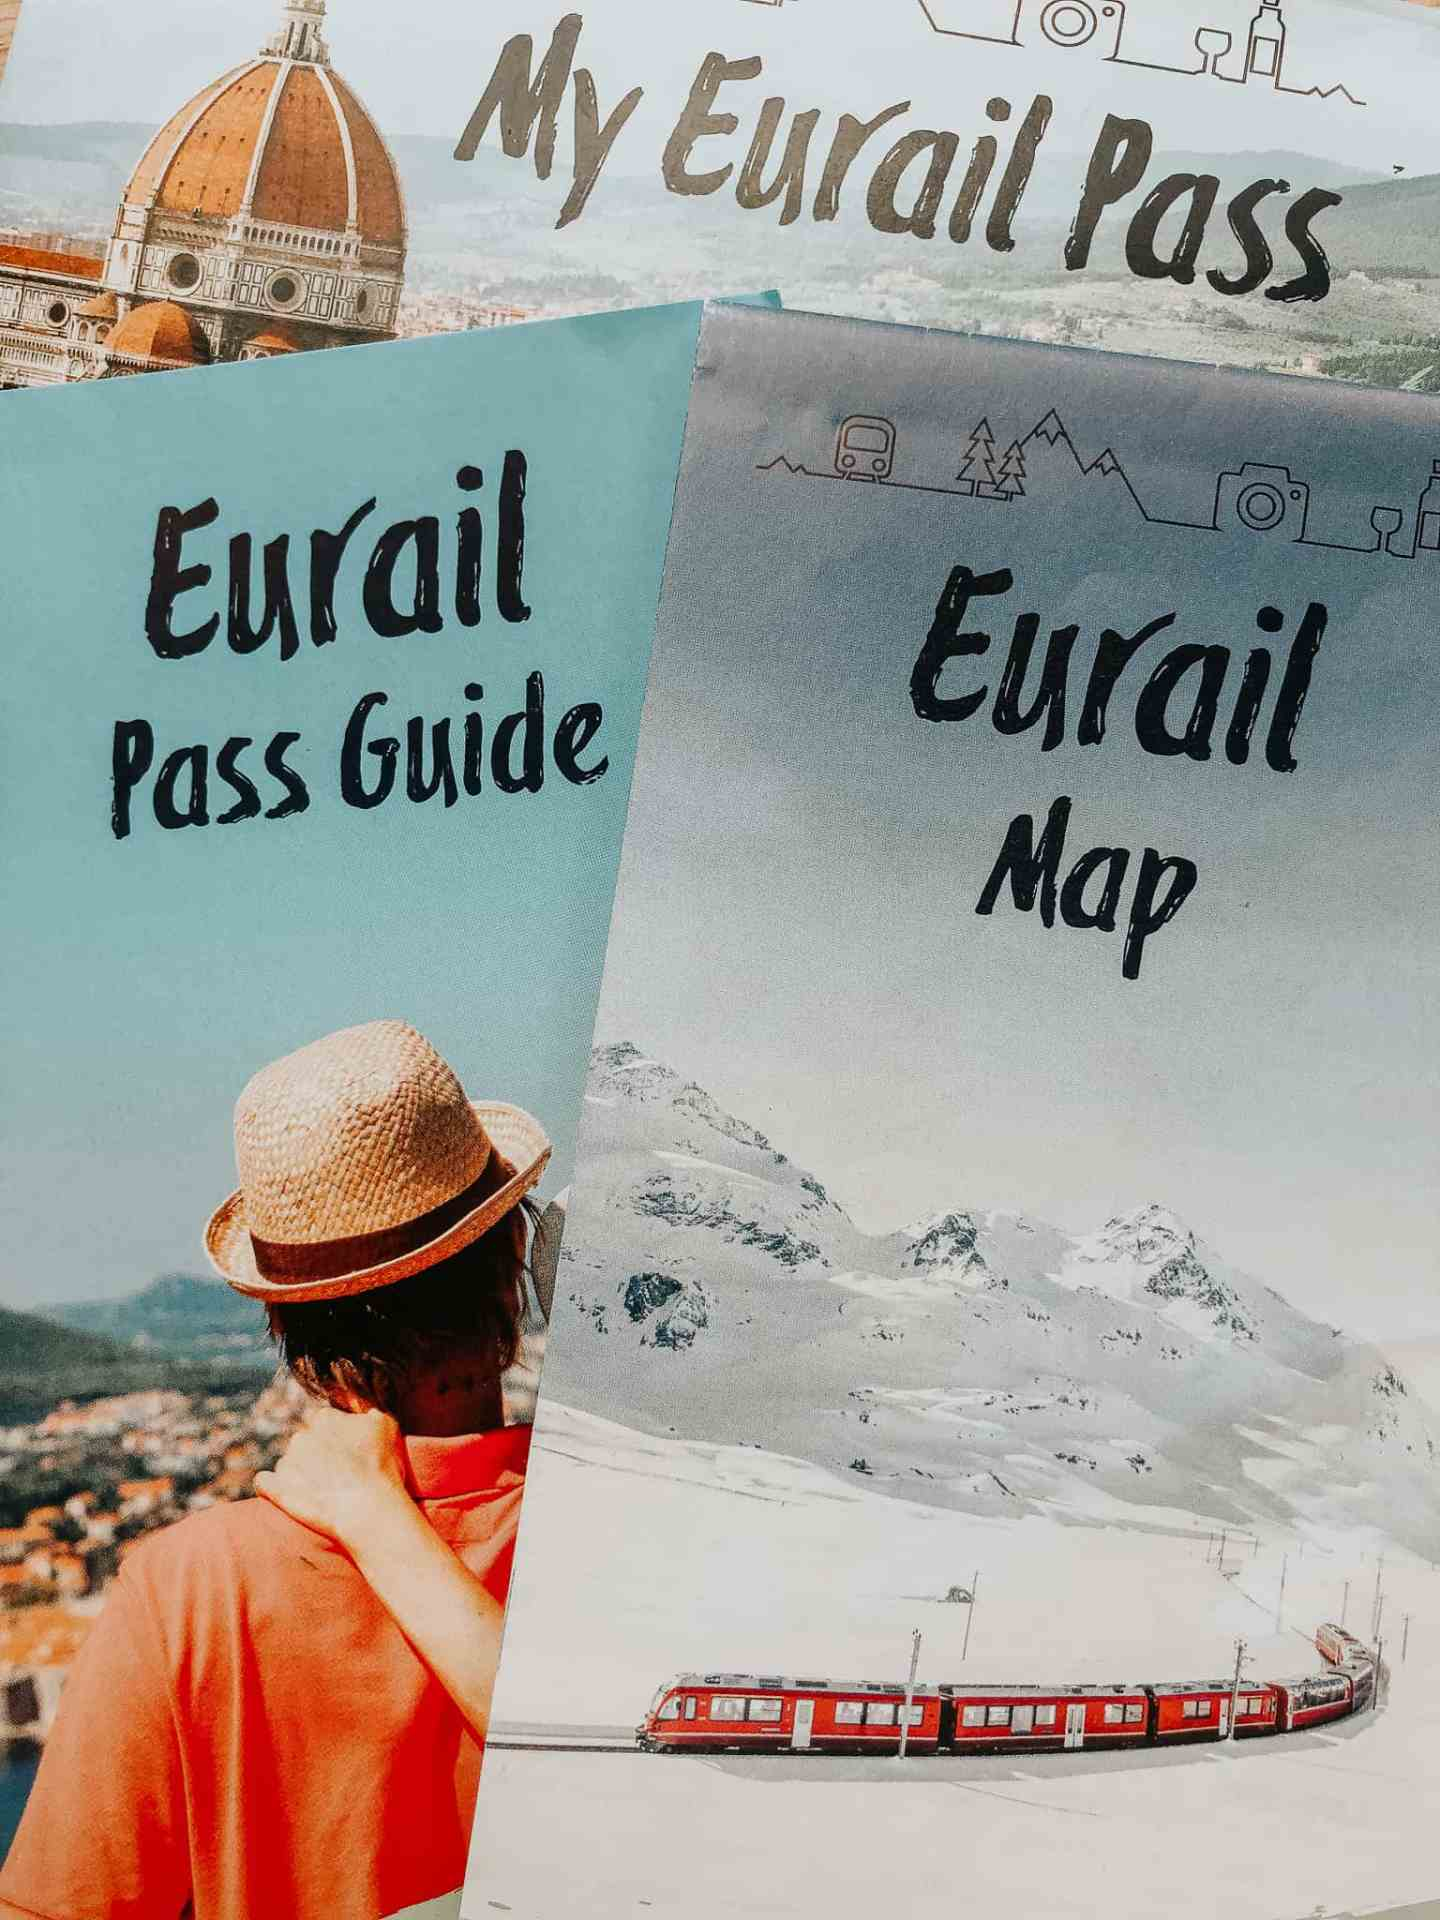 Eurail Pass guide, Eurail Map and Eurail Pass